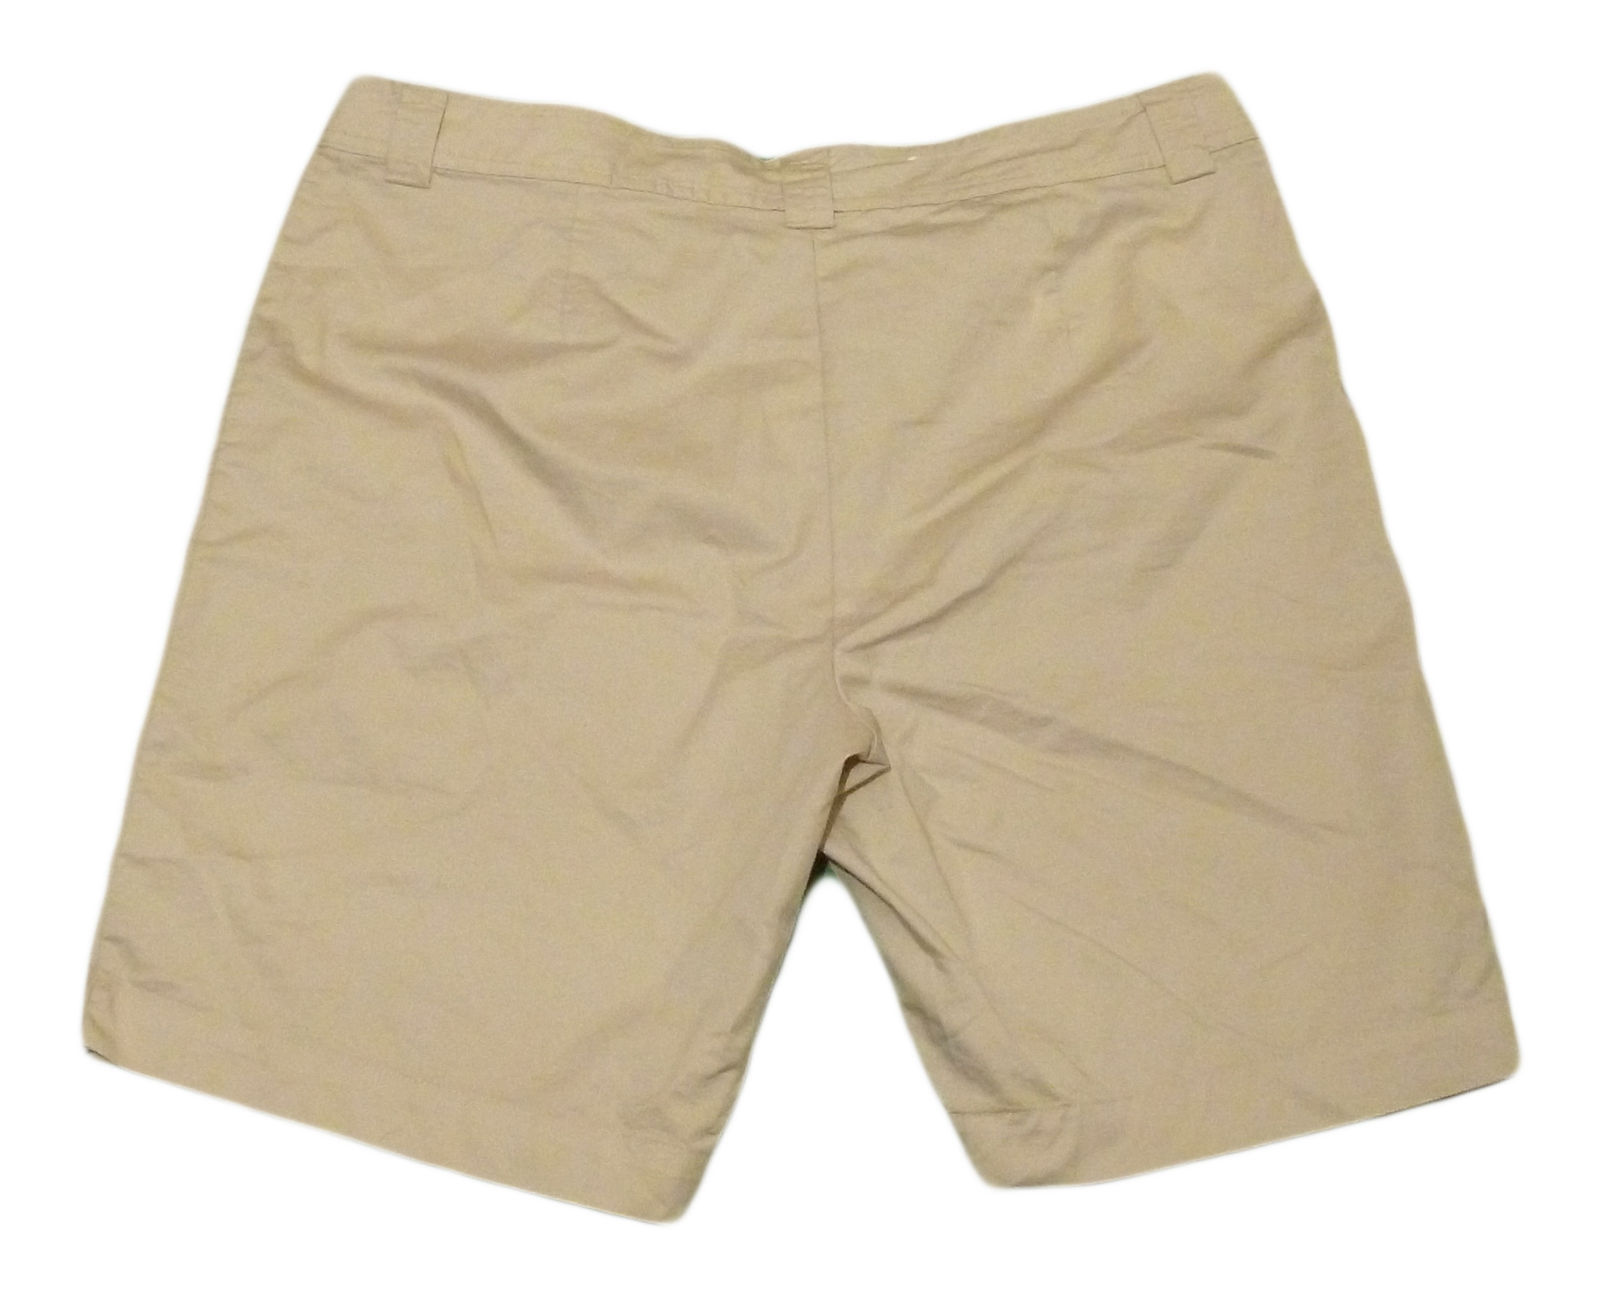 Womens Brown WHITE STAG Casual Shorts 18 Cotton Polyester Blend